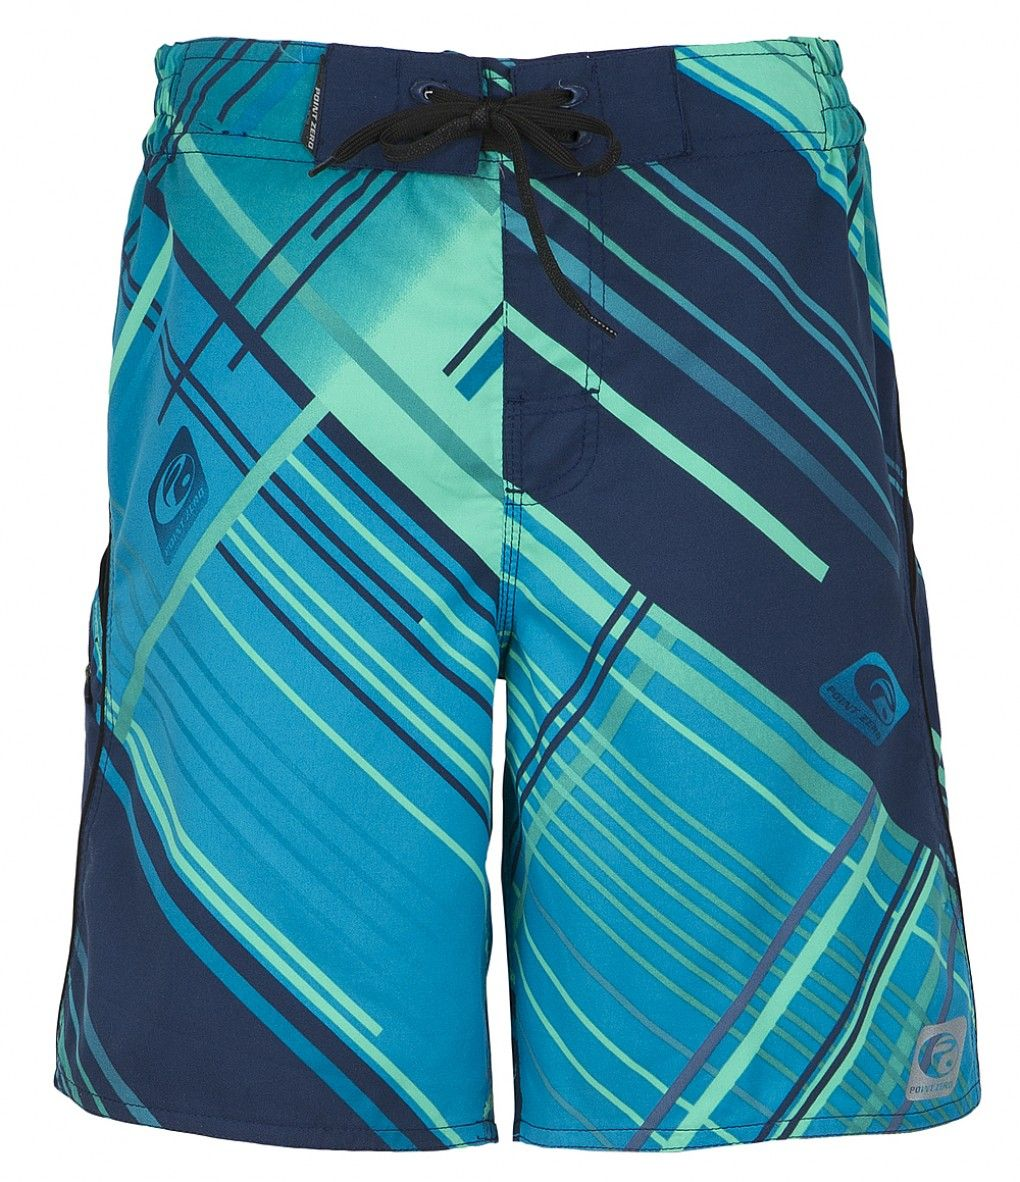 Point Zero Board Shorts Mens Bathing Suits Clothing Brand Board Shorts